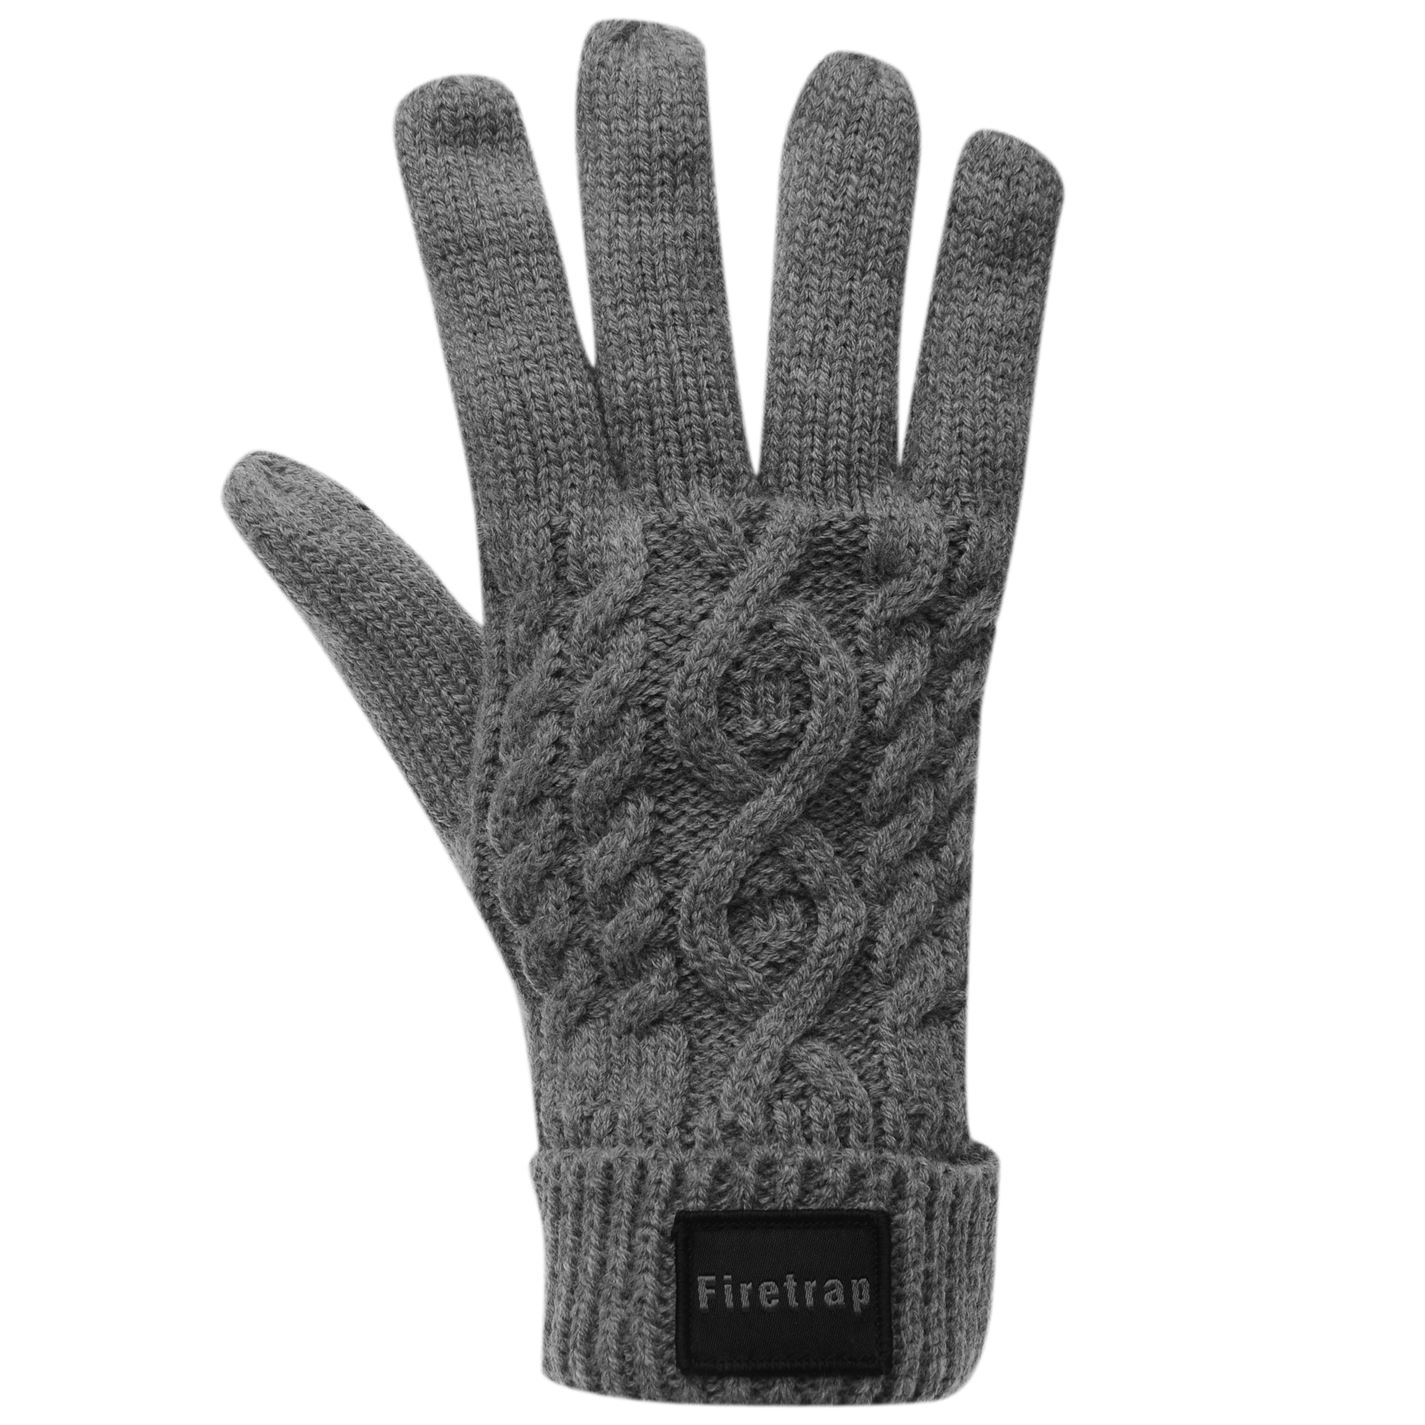 Mens-Firetrap-Cable-Knit-Gloves-Knitted-Winter-New thumbnail 4